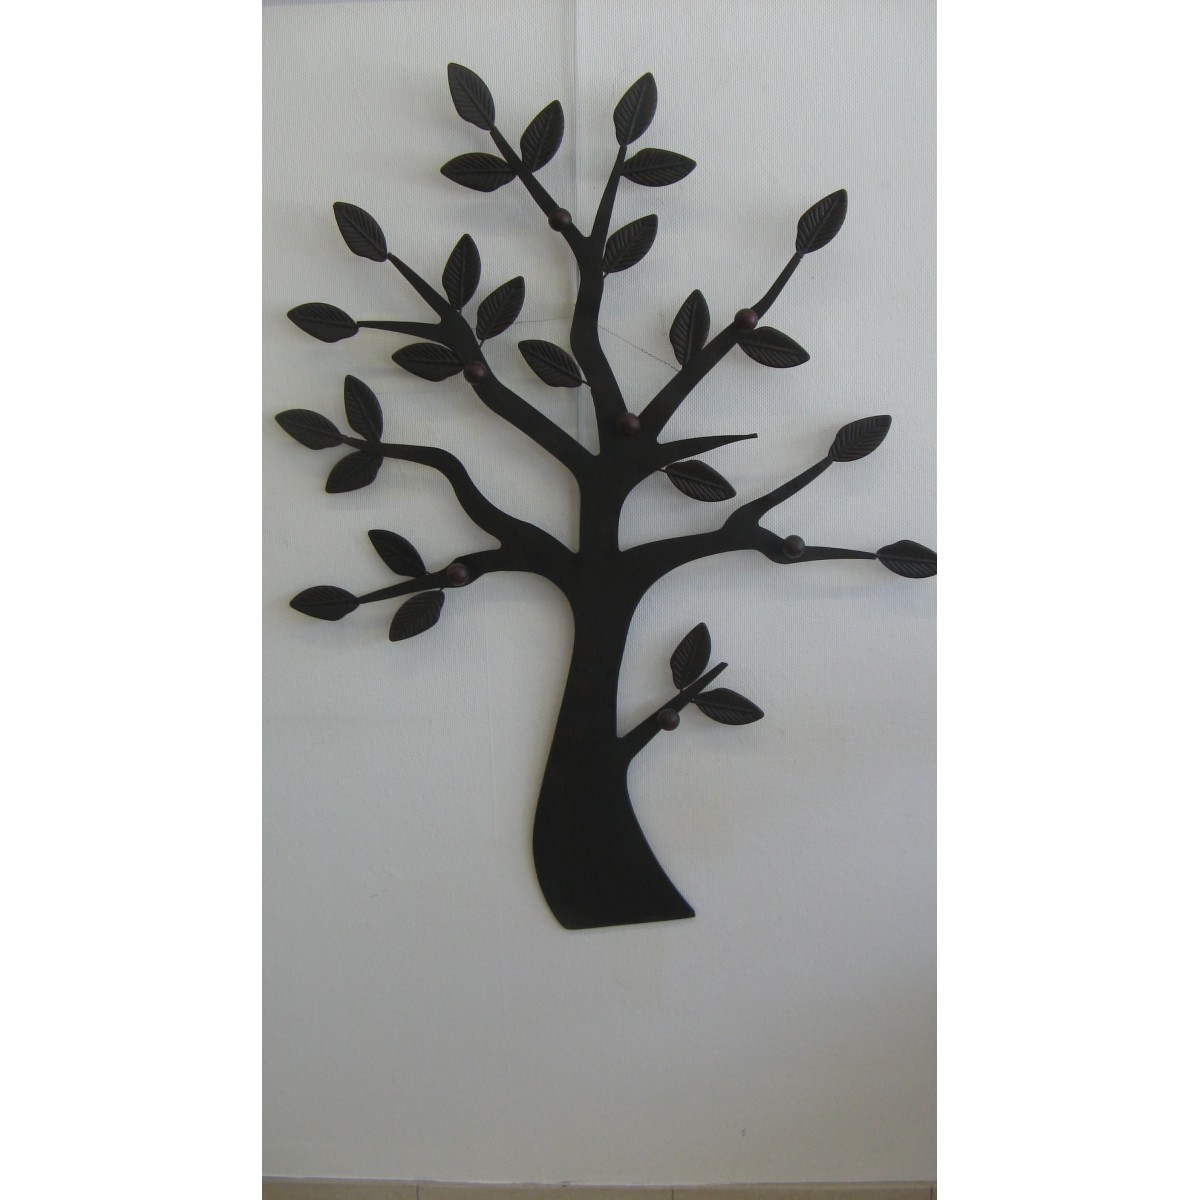 arbre porte manteau mural 28 images porte manteau mural arbre porte manteau mural arbre. Black Bedroom Furniture Sets. Home Design Ideas